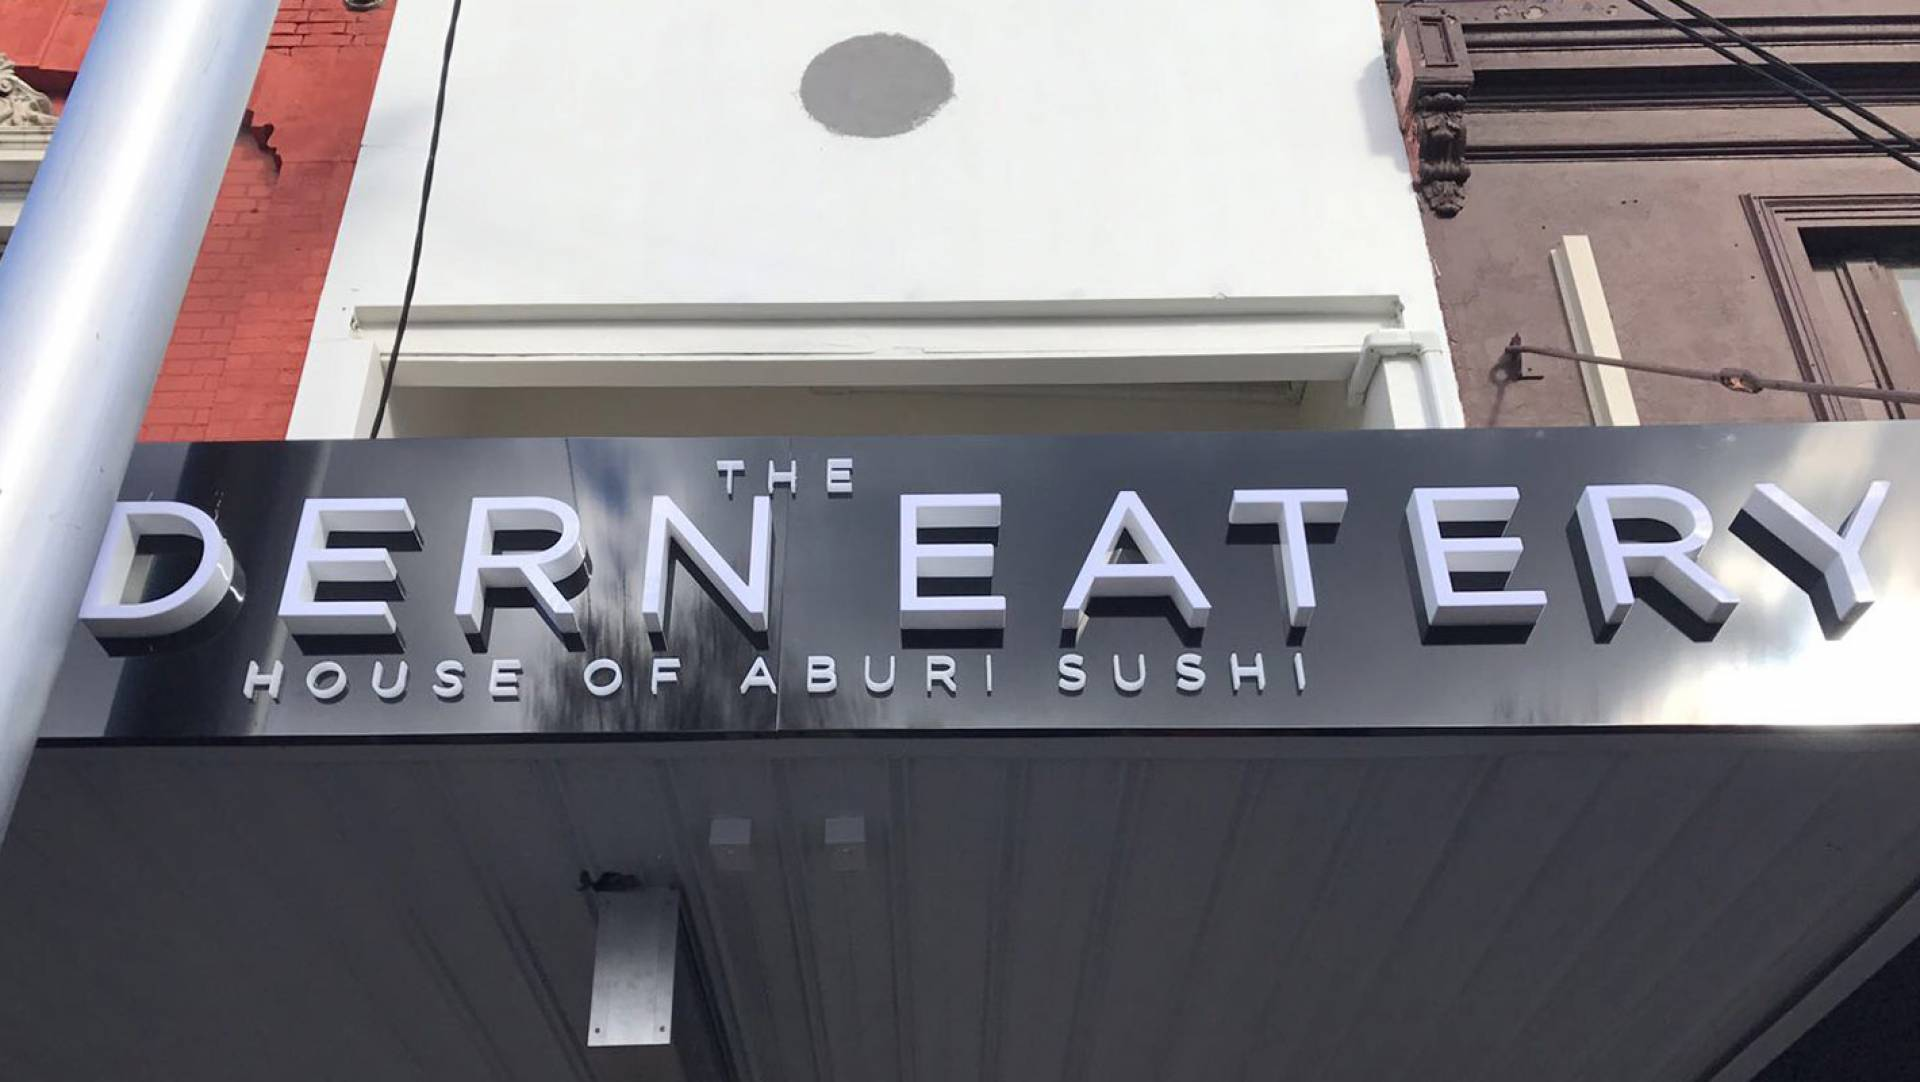 Restaurant & Bar Design-The Modern Eatery House of Aburi Sushi